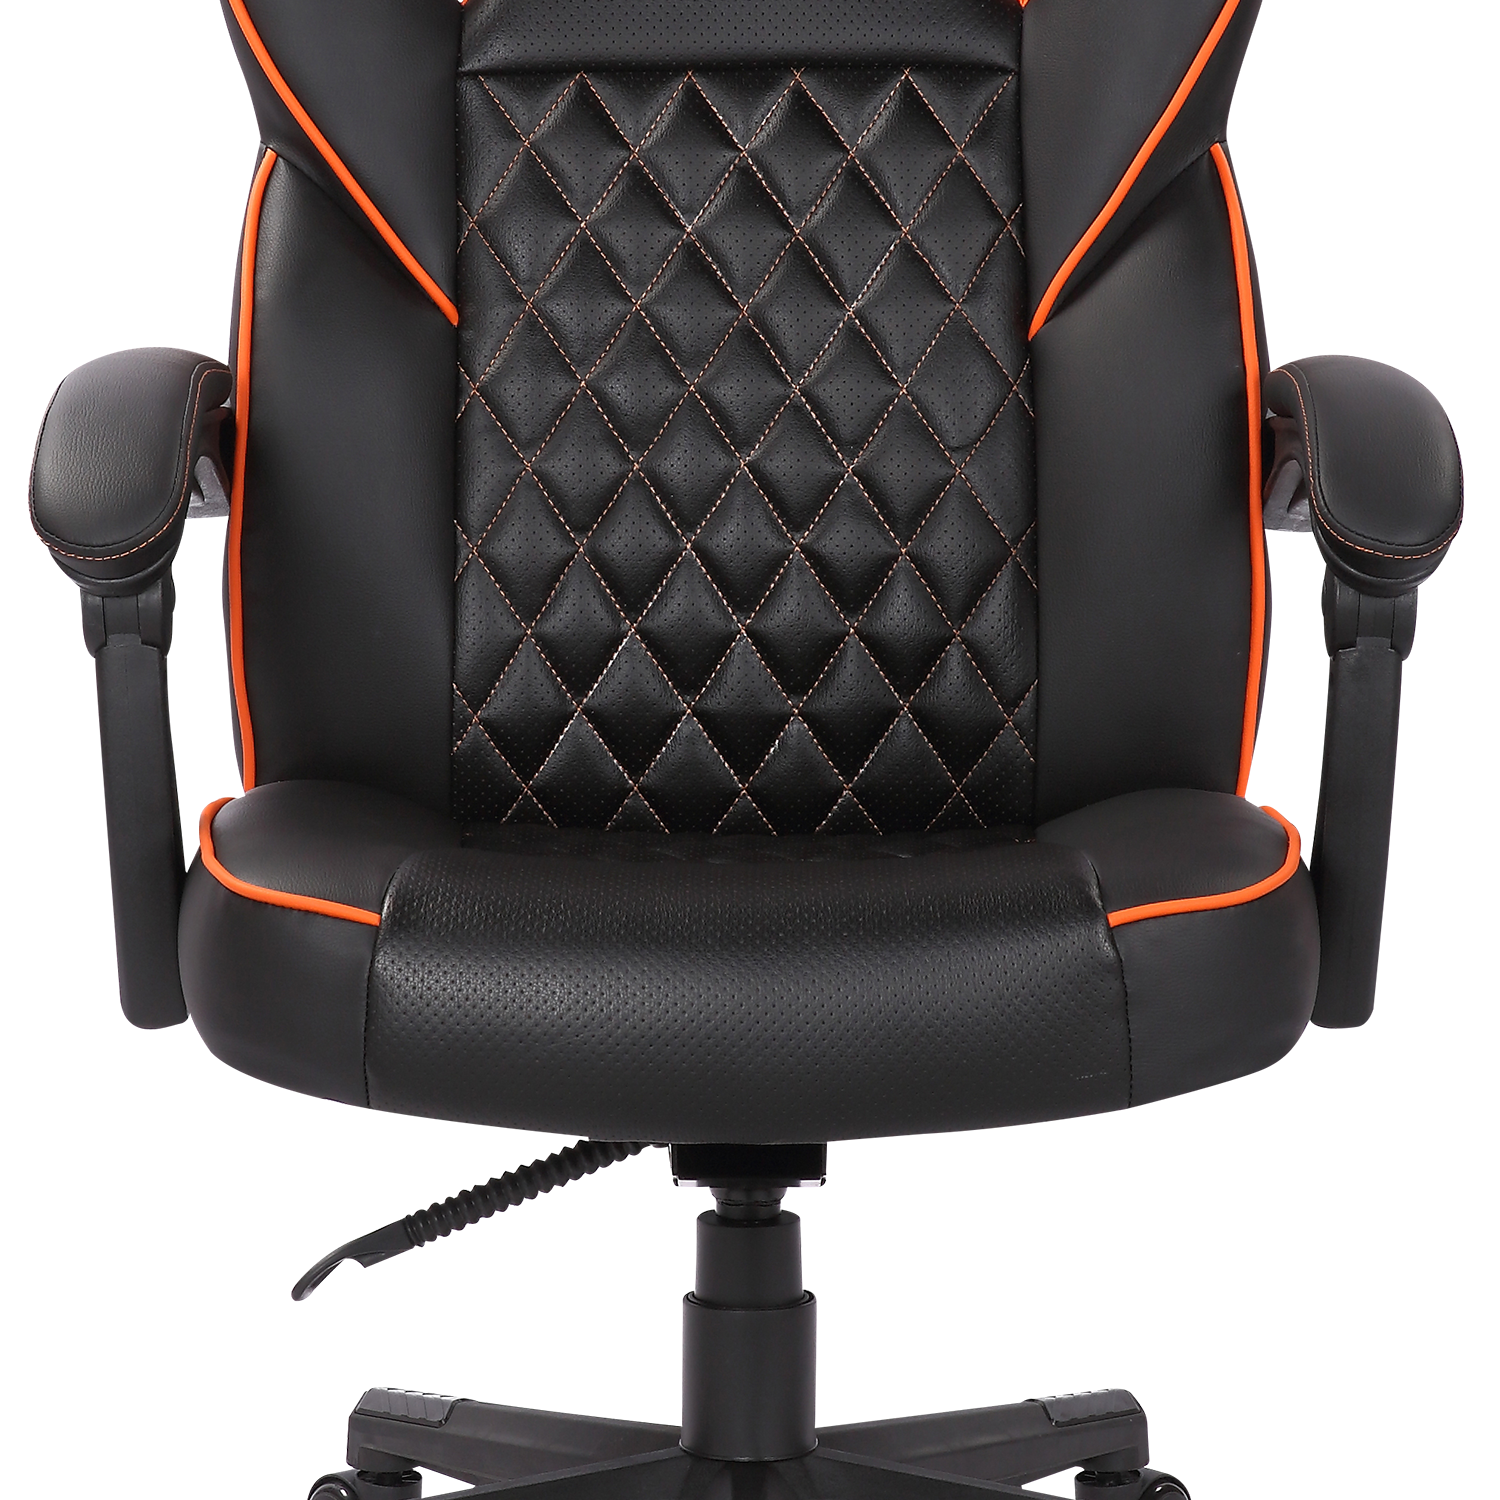 Darkflash Gaming Comfortable Fashionable Stylish Office Chair View Office Chair Darkflash Product Details From Guangzhou Huaqi Digital Technology Co Ltd On Alibaba Com